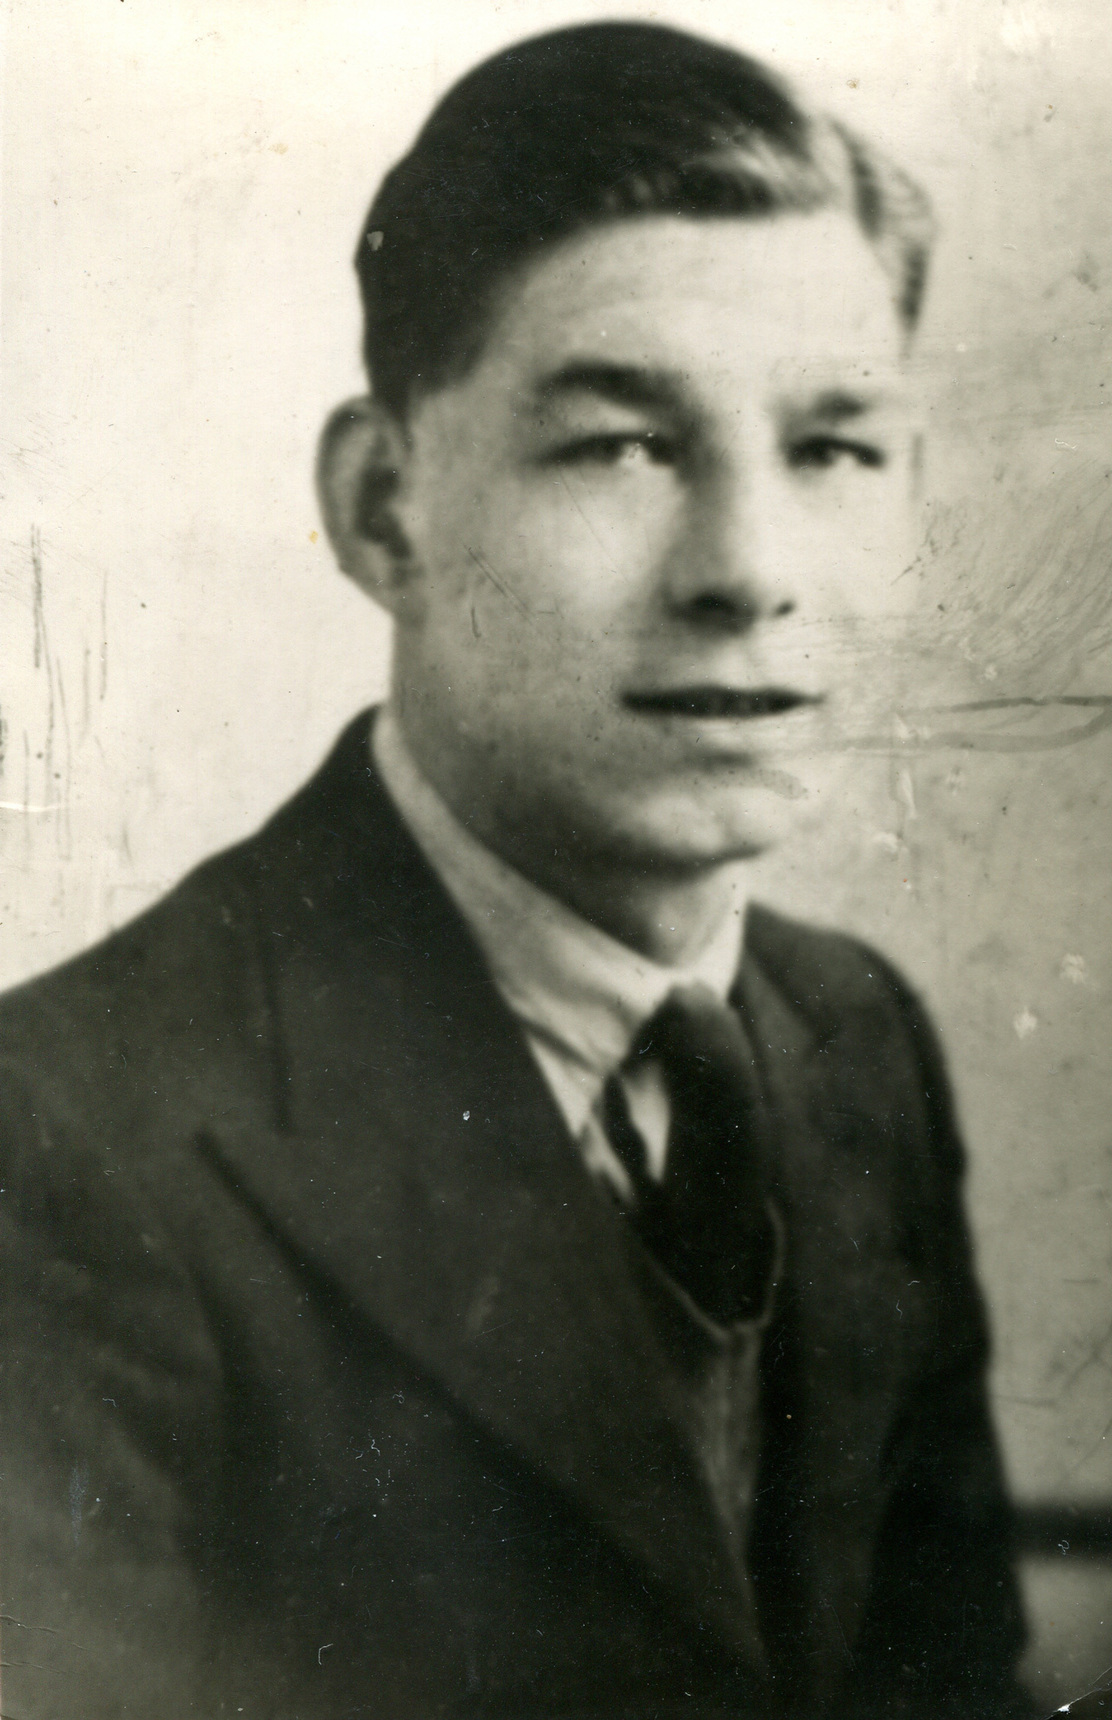 Studio Portrait Young Man c.1938